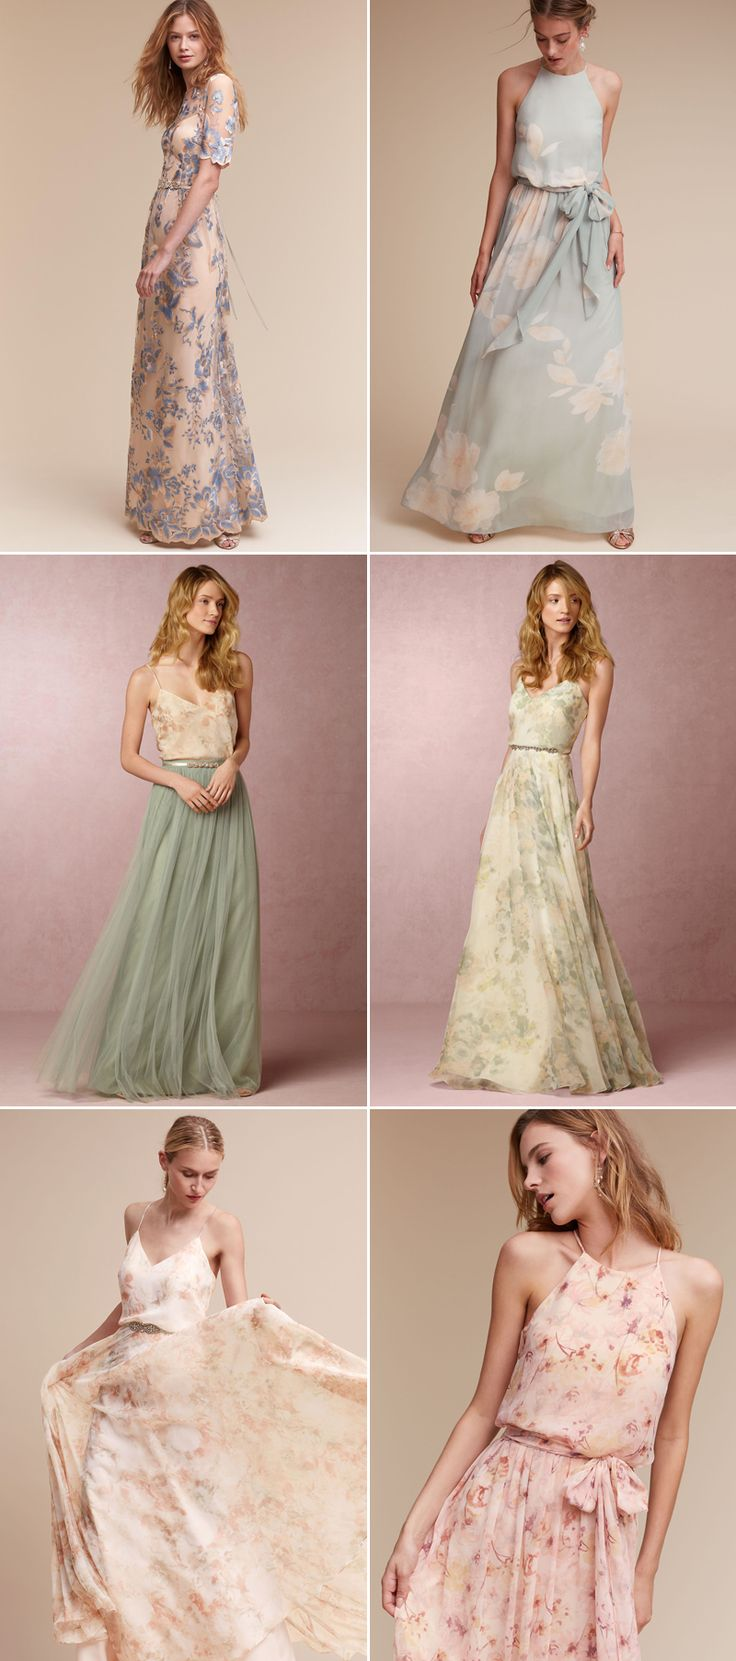 Best beach wedding dresses for guests   best images about Bridesmaids on Pinterest  Gardens Romantic and